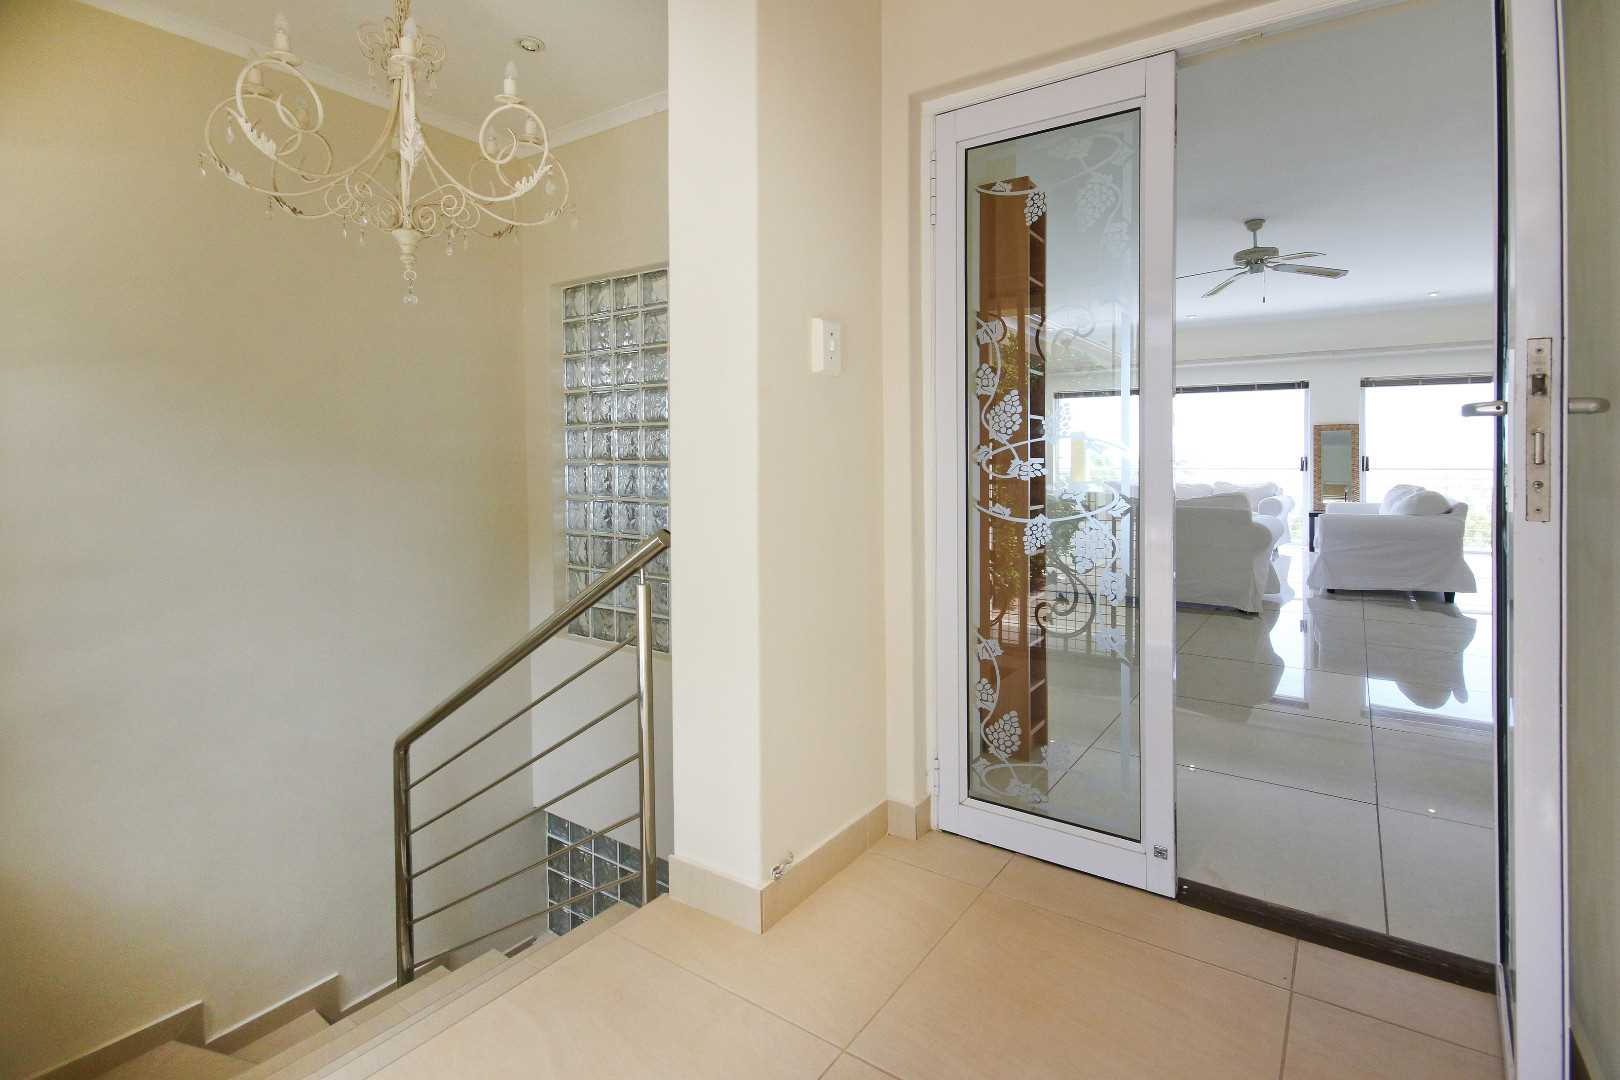 Secure entrance hall beyond sliding front door with security gate.